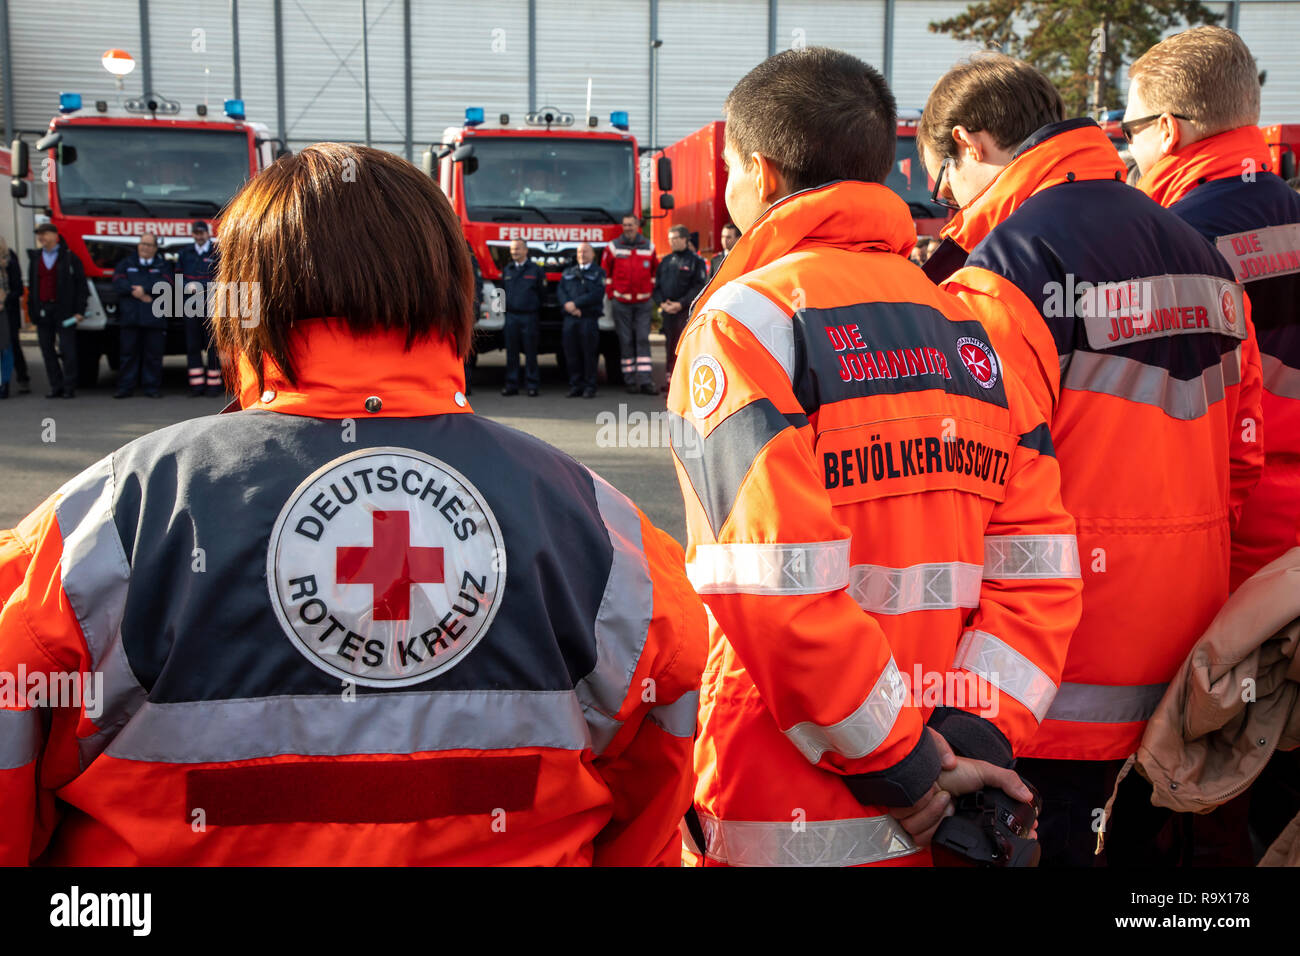 Rescue Workers, Rescue Service, Volunteers, Aid Organizations, The Johanniter, German Red Cross, - Stock Image